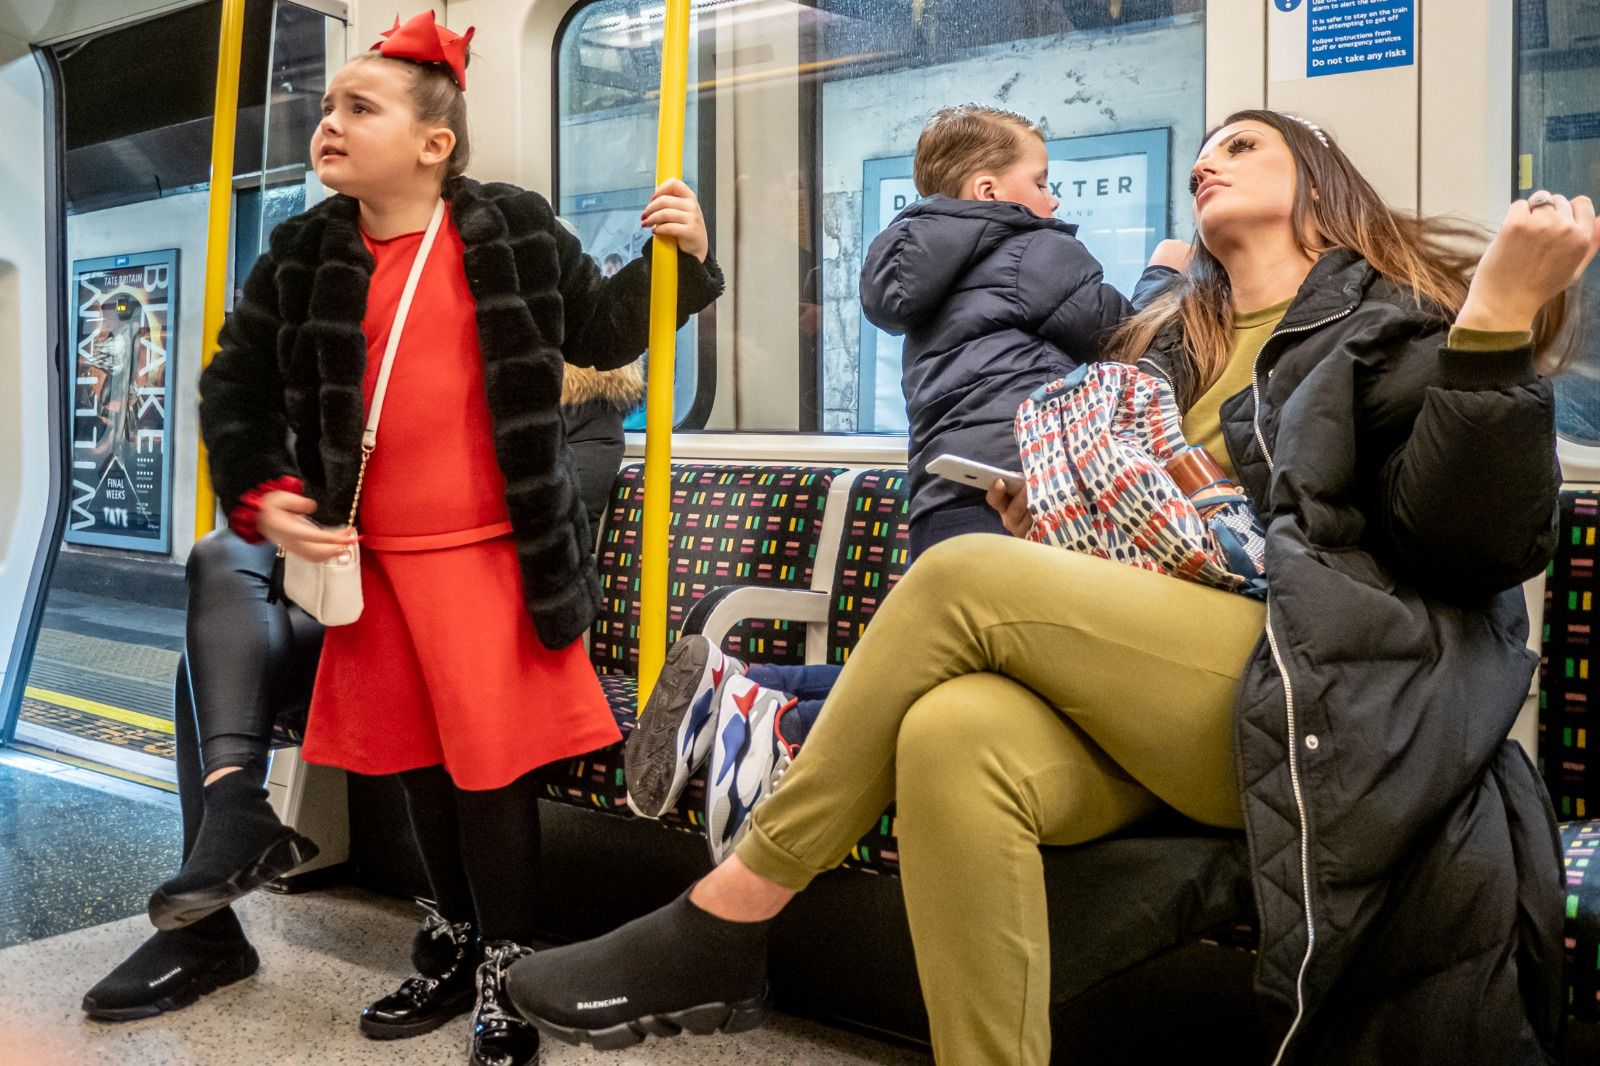 Candid street photography of a family on a London Underground train.